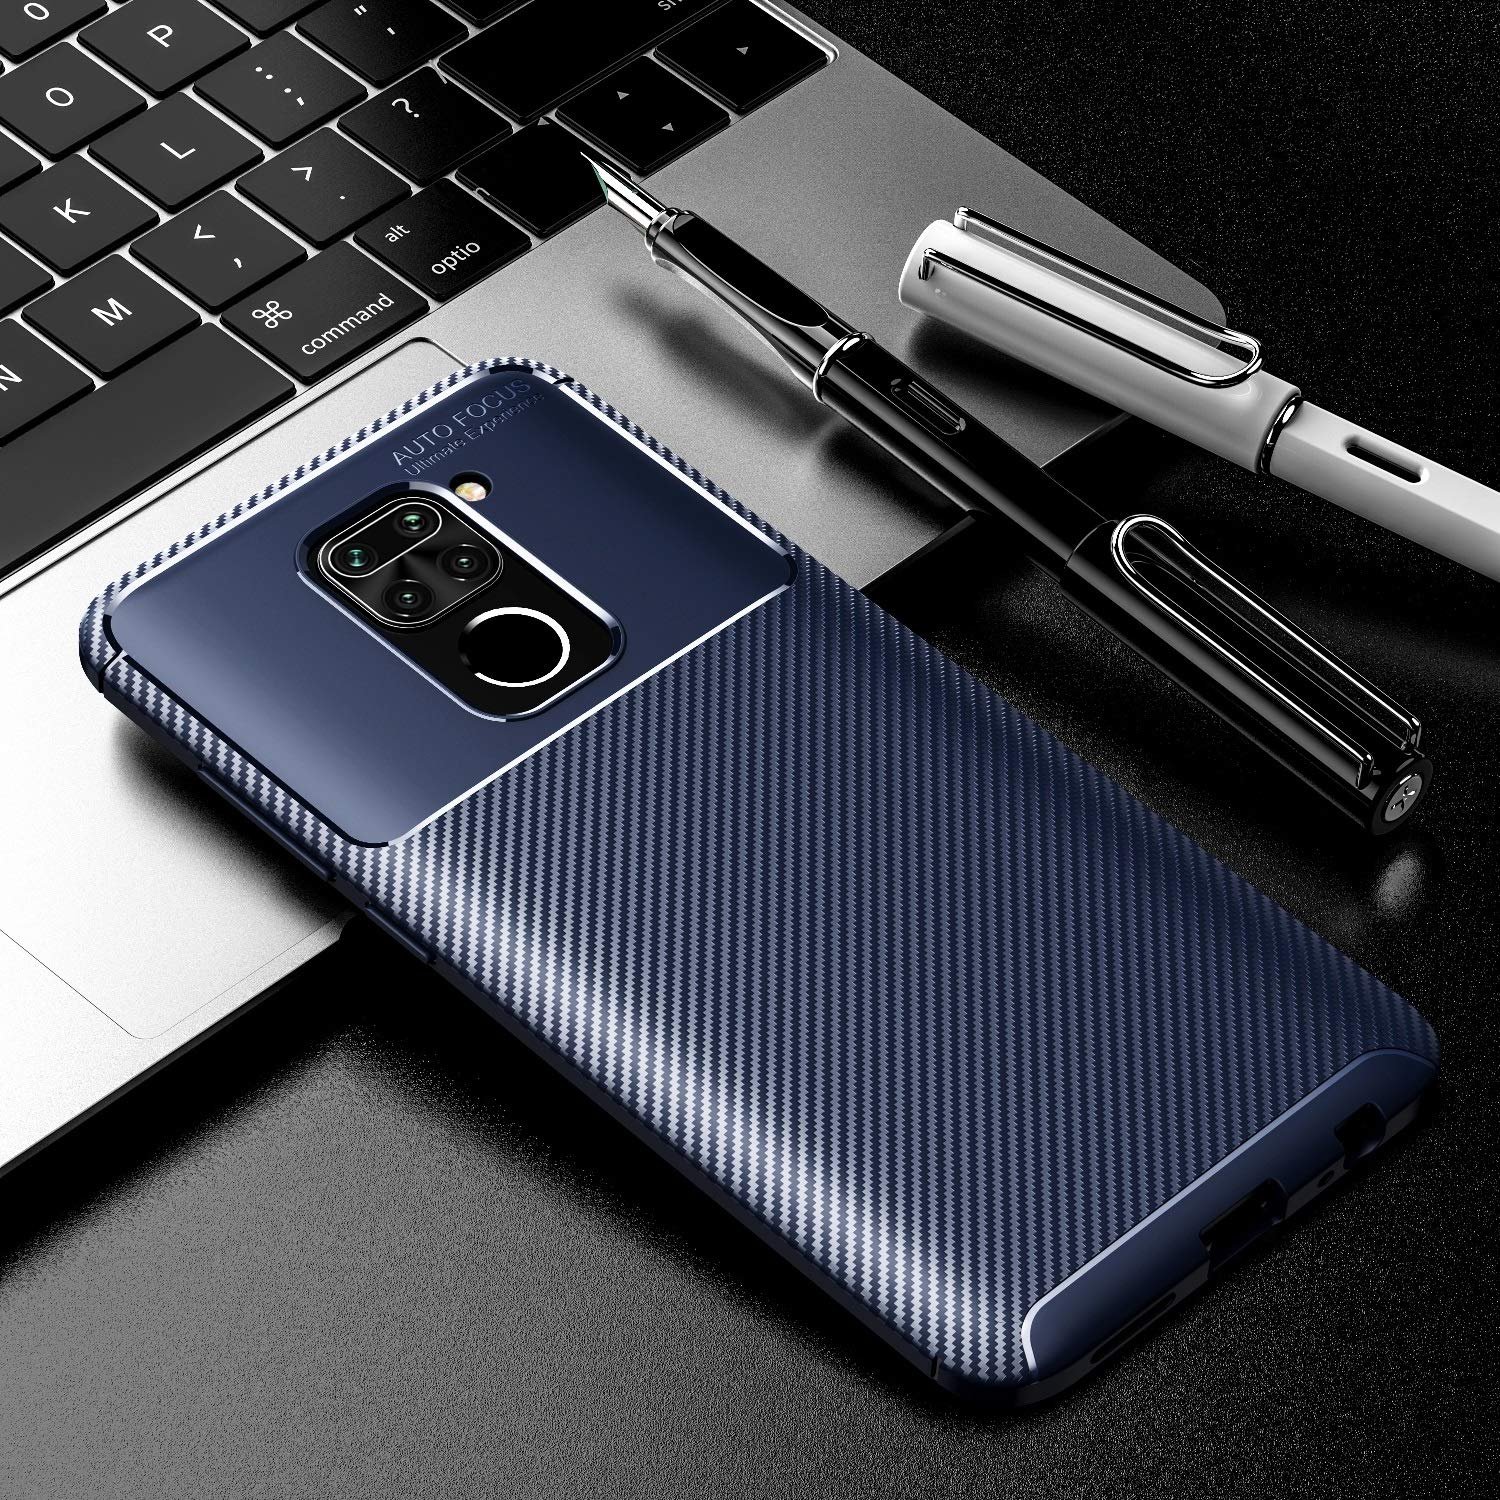 A.S Platinum Carbon Fiber ShockProof Rugged Armor Slim Drop Tested Back Case Cover